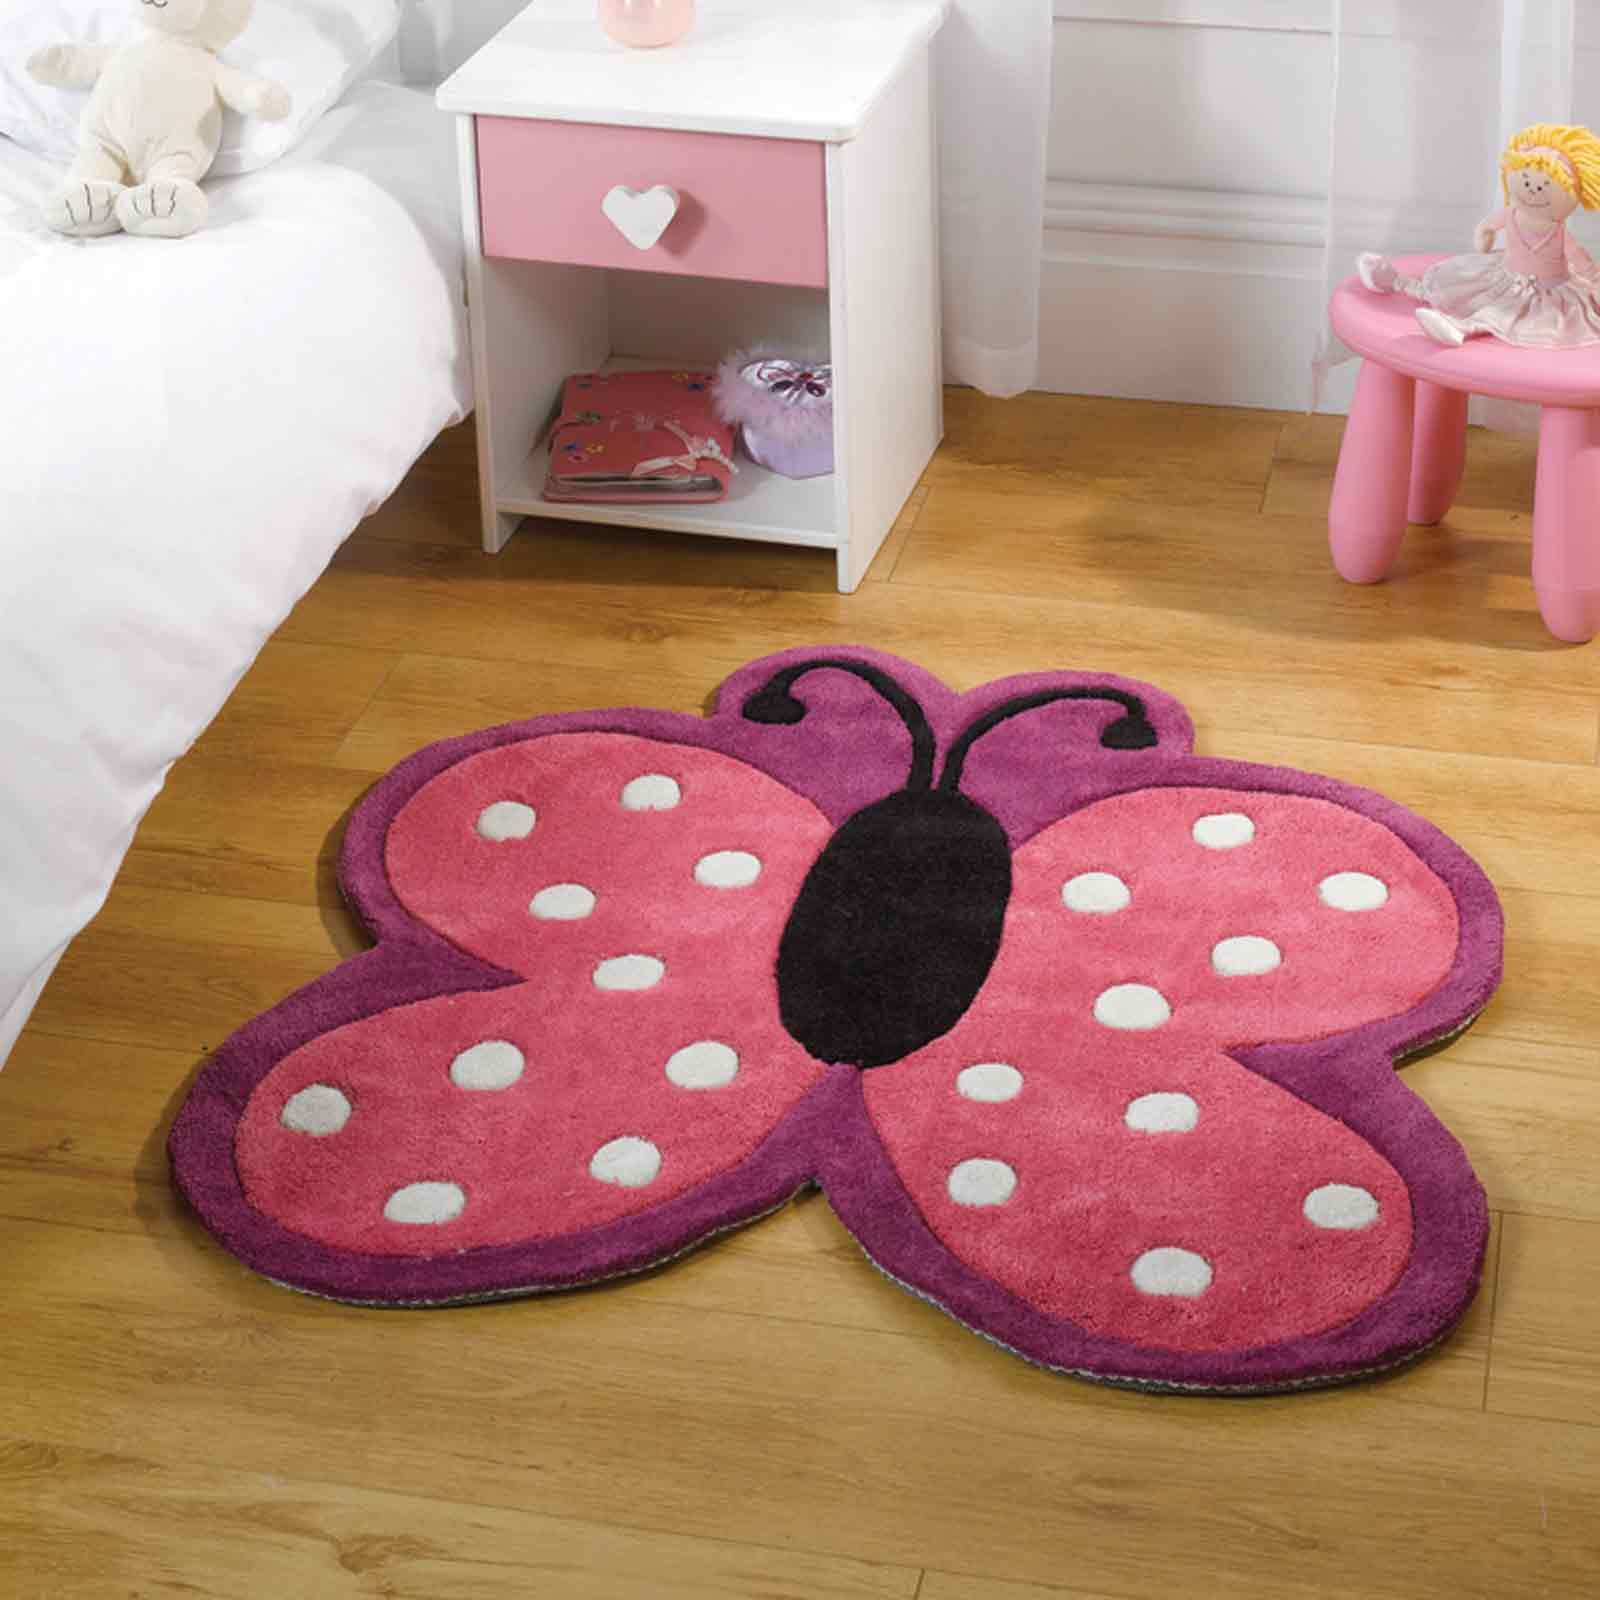 Kiddy Play Polka Butterfly Rugs In Pink90x90cm 3 0 X3 0